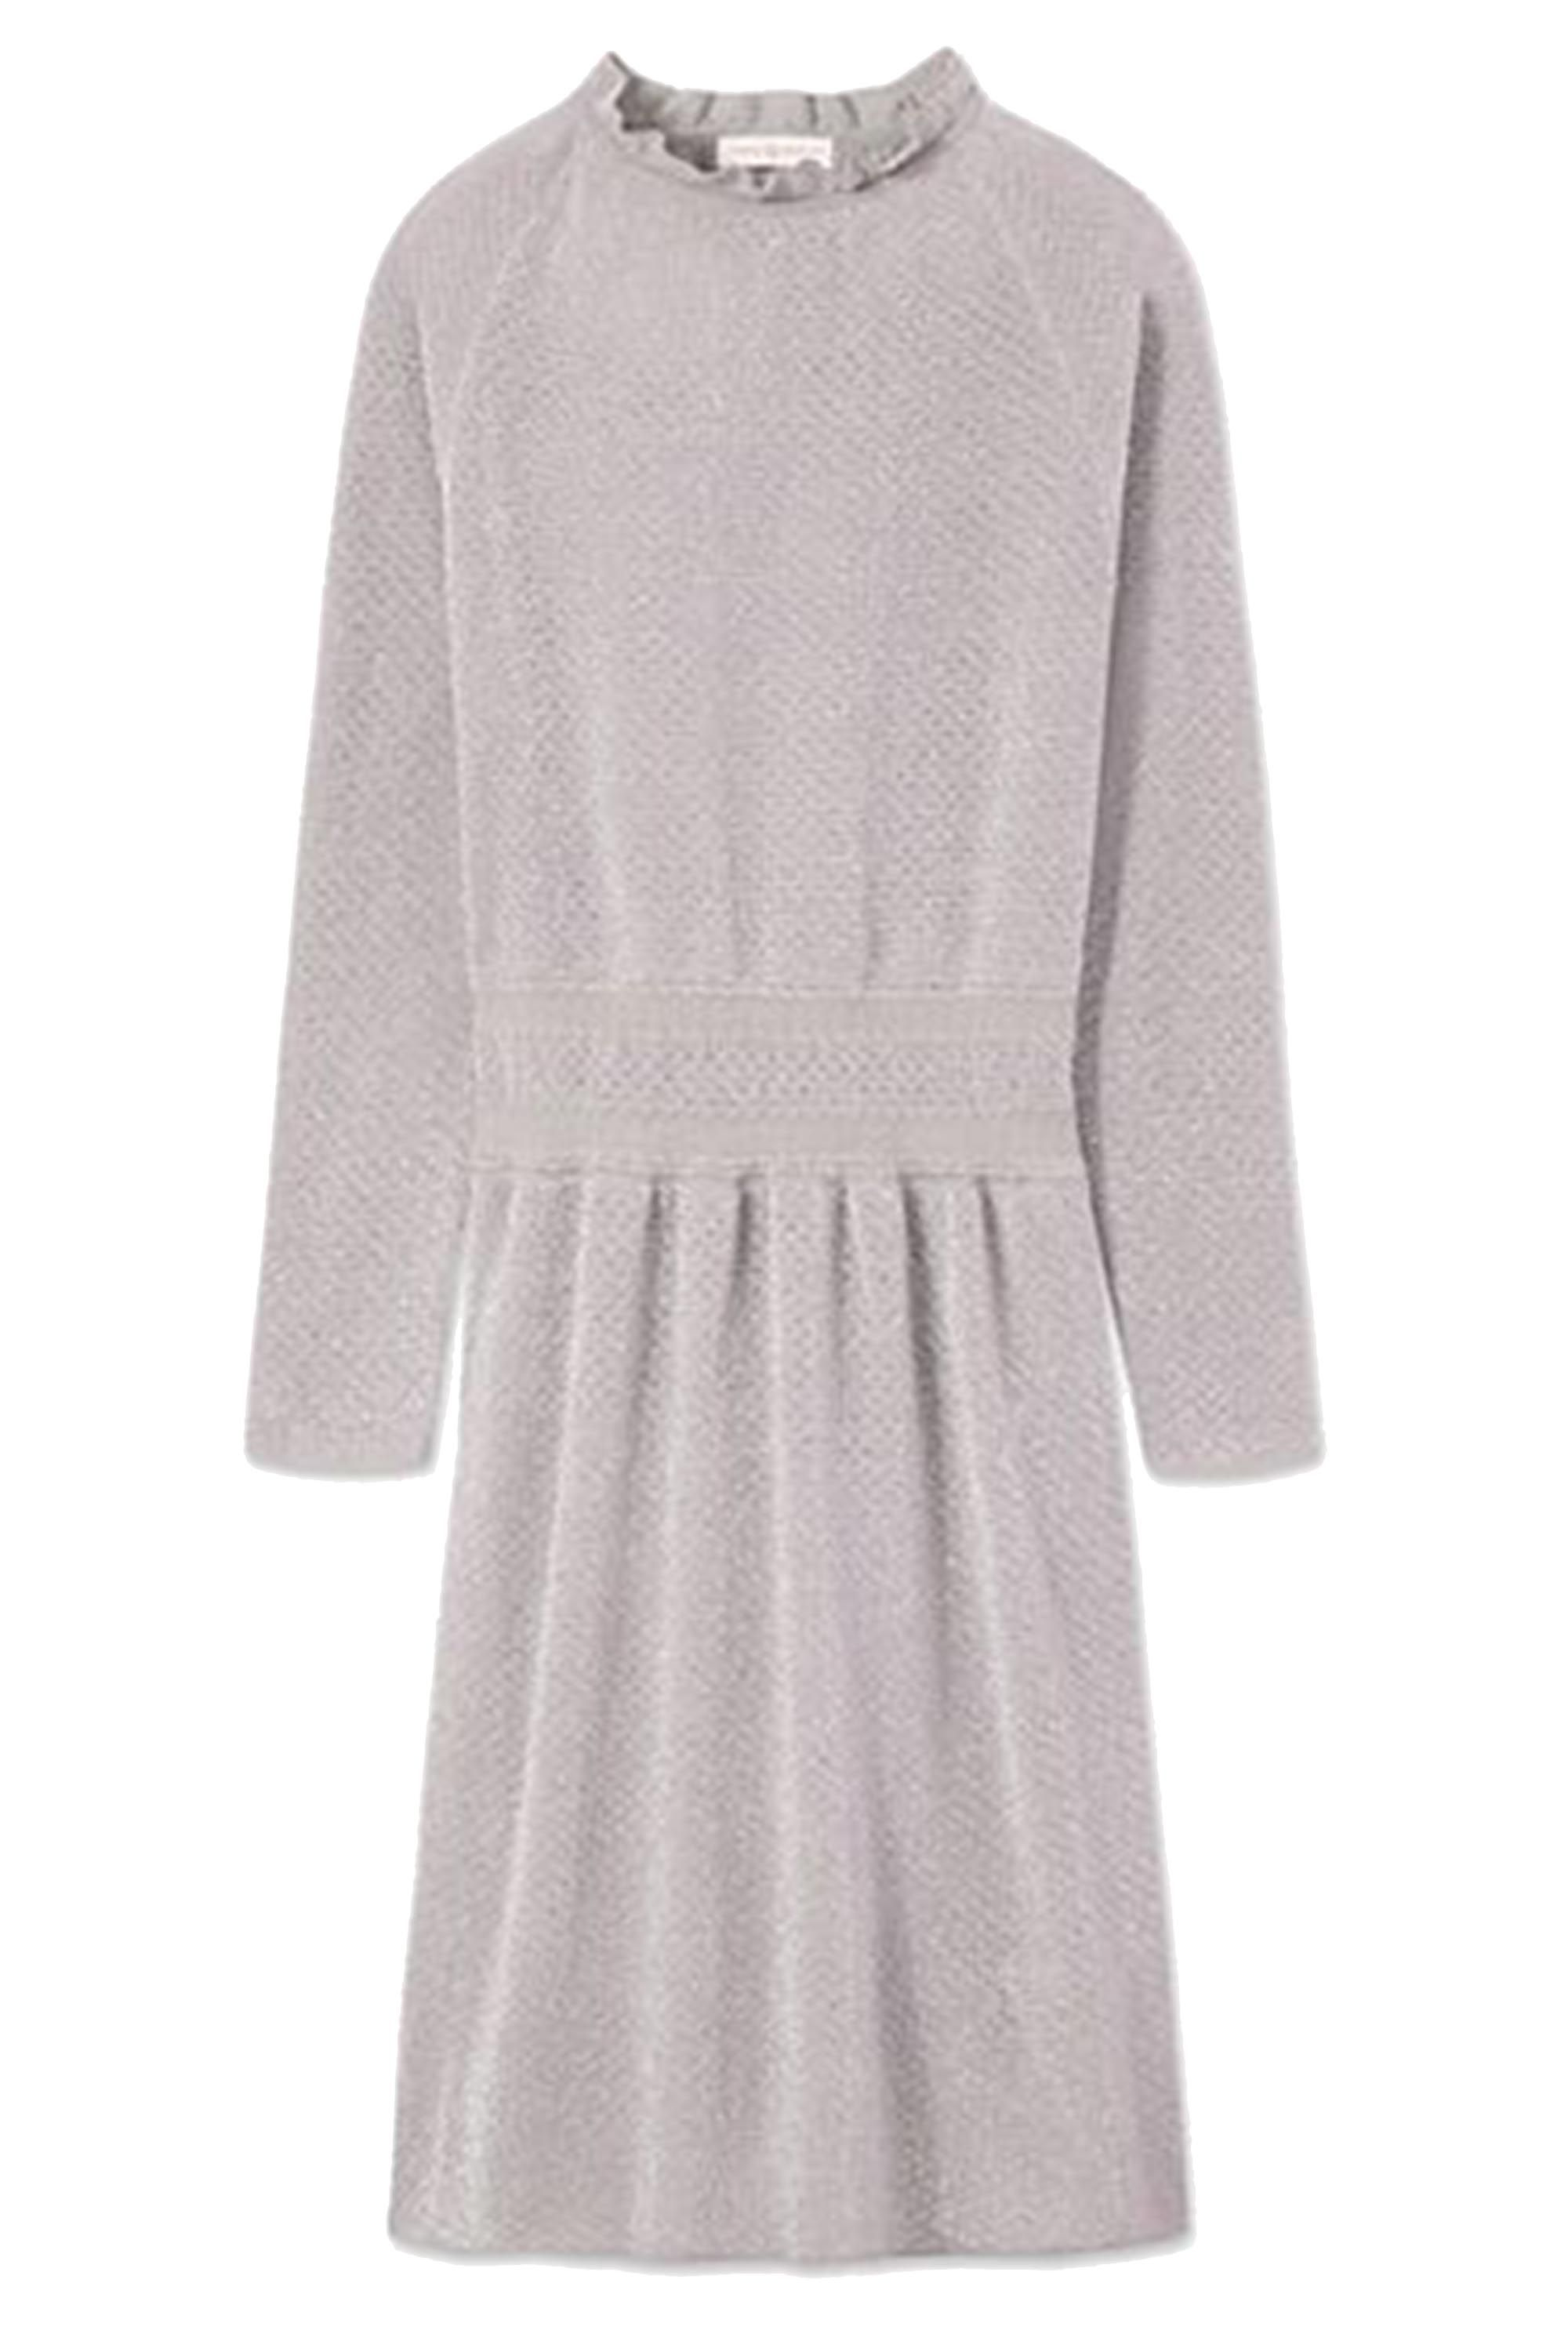 21 Dresses Any Guest Can Wear to a Winter Wedding   Winter wedding ...